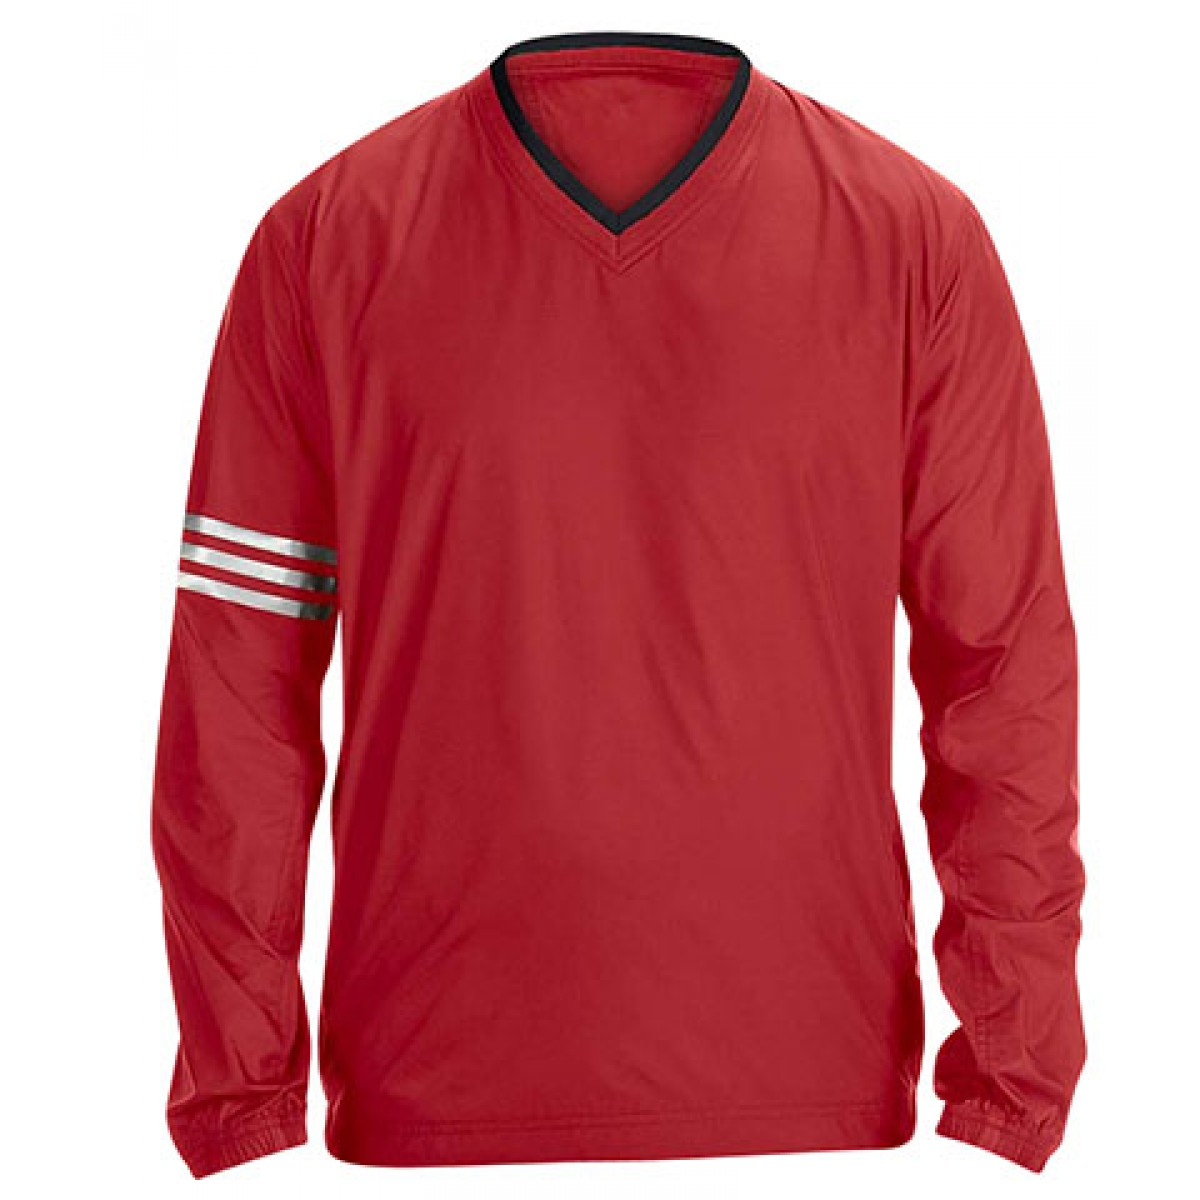 Adidas ClimaLite V-Neck Long Sleeve Wind Shirt-Red-3XL